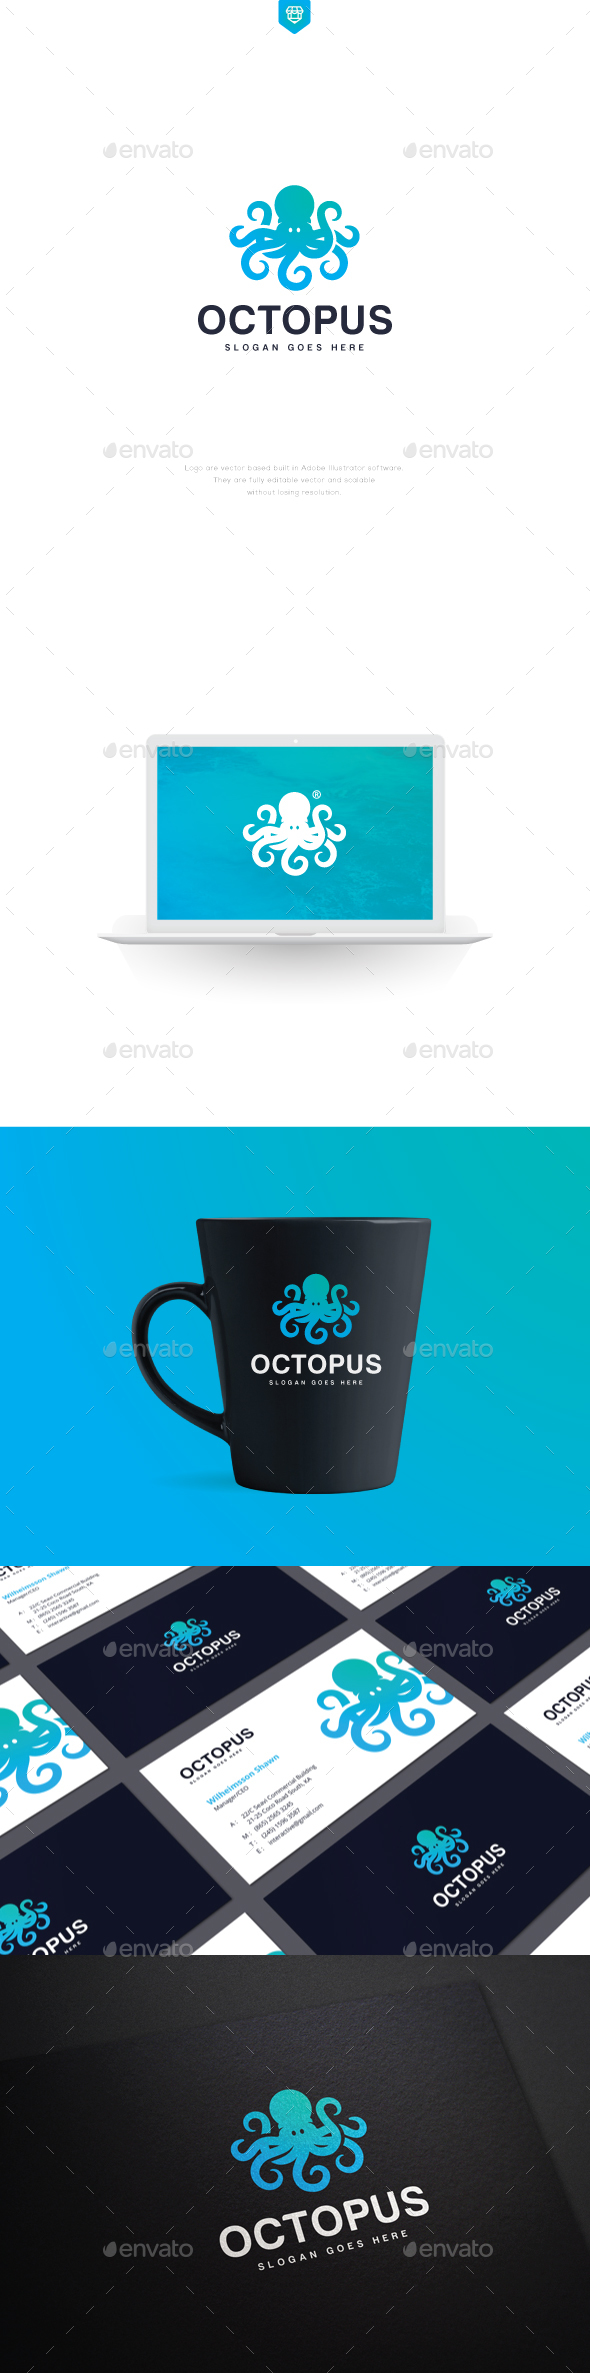 Octopus Logo Template - Animals Logo Templates